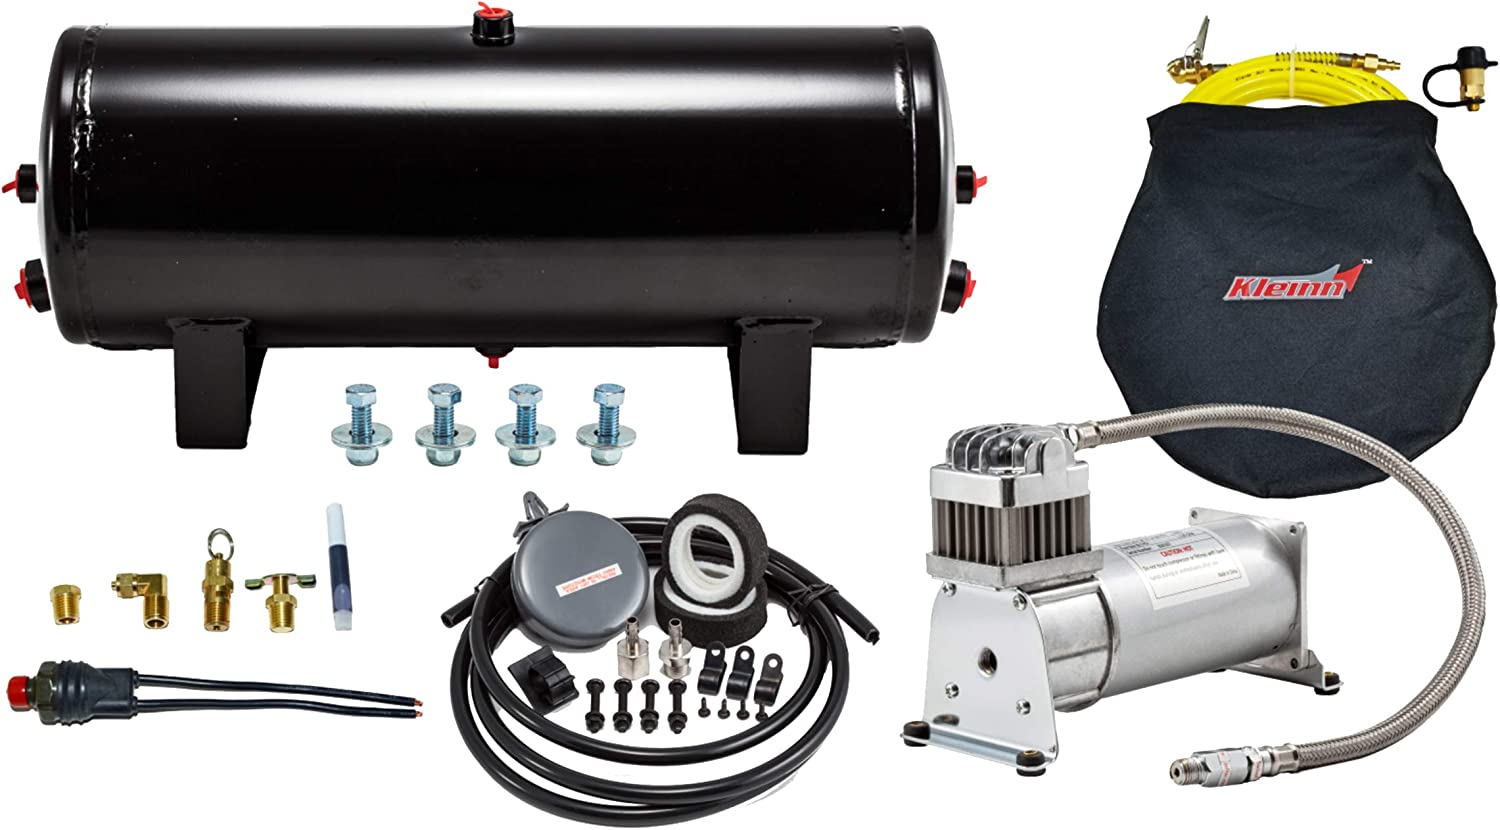 Kleinn Air Horns 6354 24-Volt 150 PSI Heavy Duty Sealed Air System With Compressor, 3 Gallon Tank and Hardware